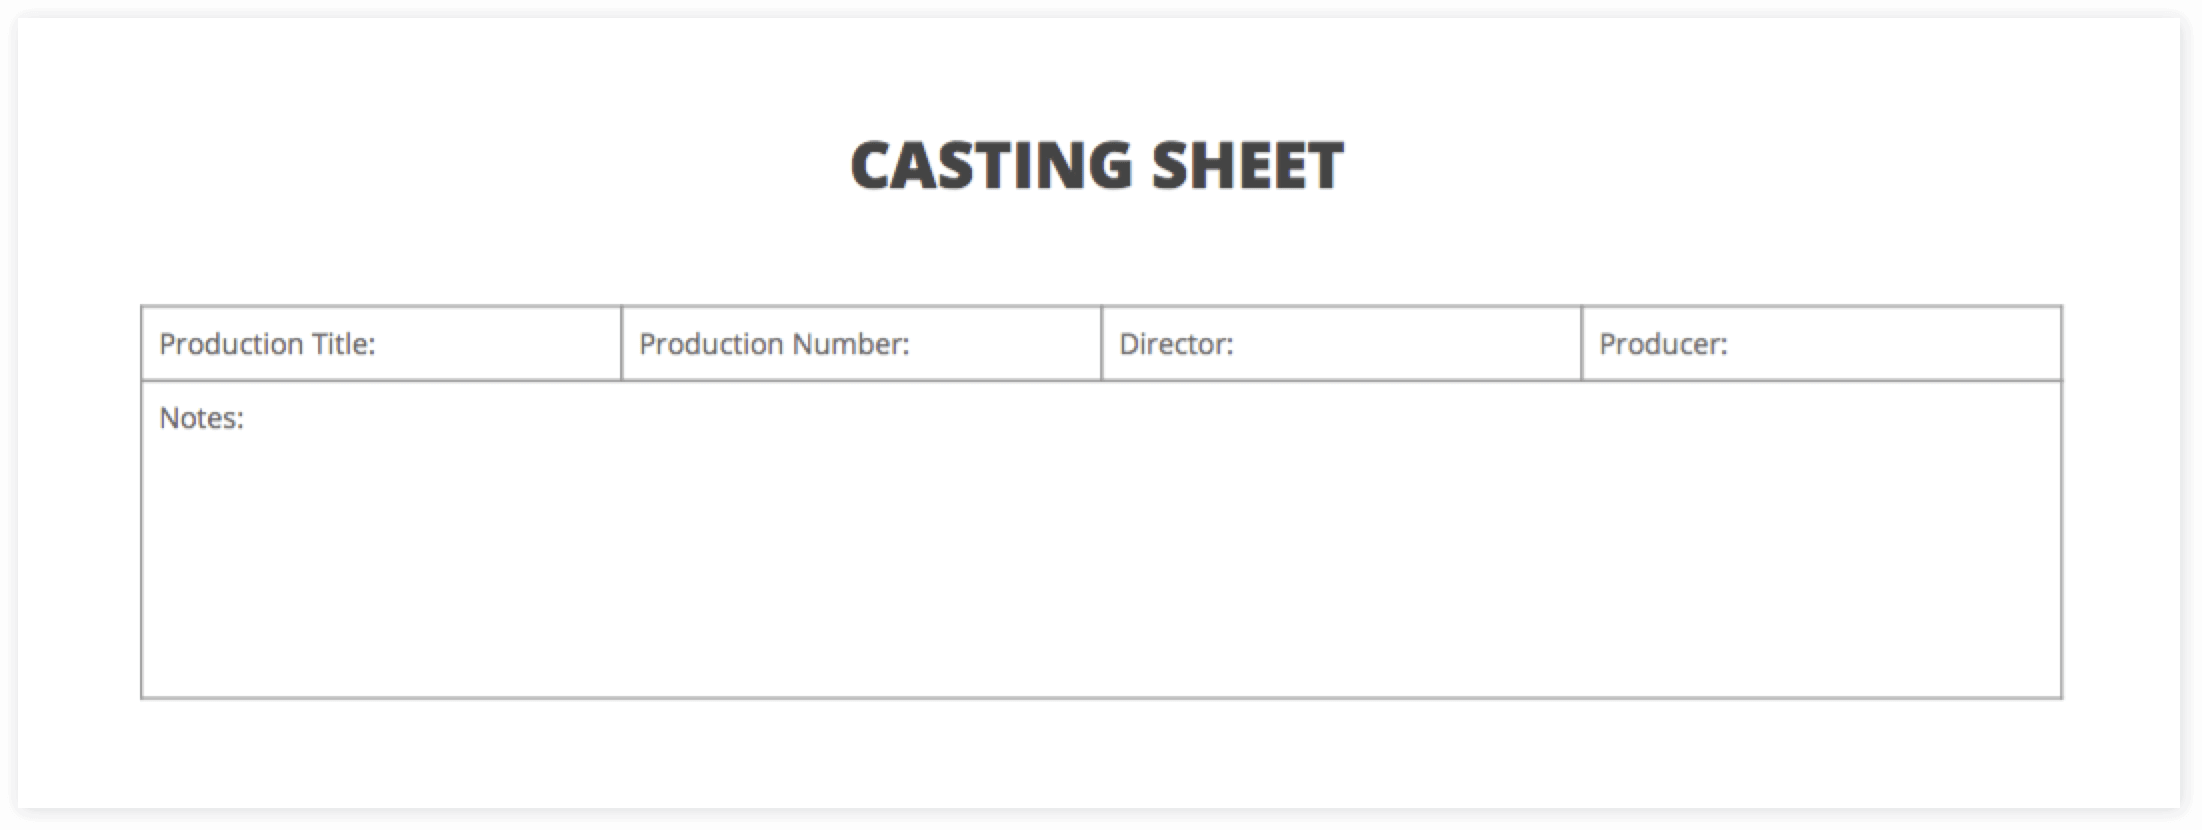 The Ultimate Guide to Casting Auditions (with FREE Casting Sheet Template) - Casting Sheet Top Half